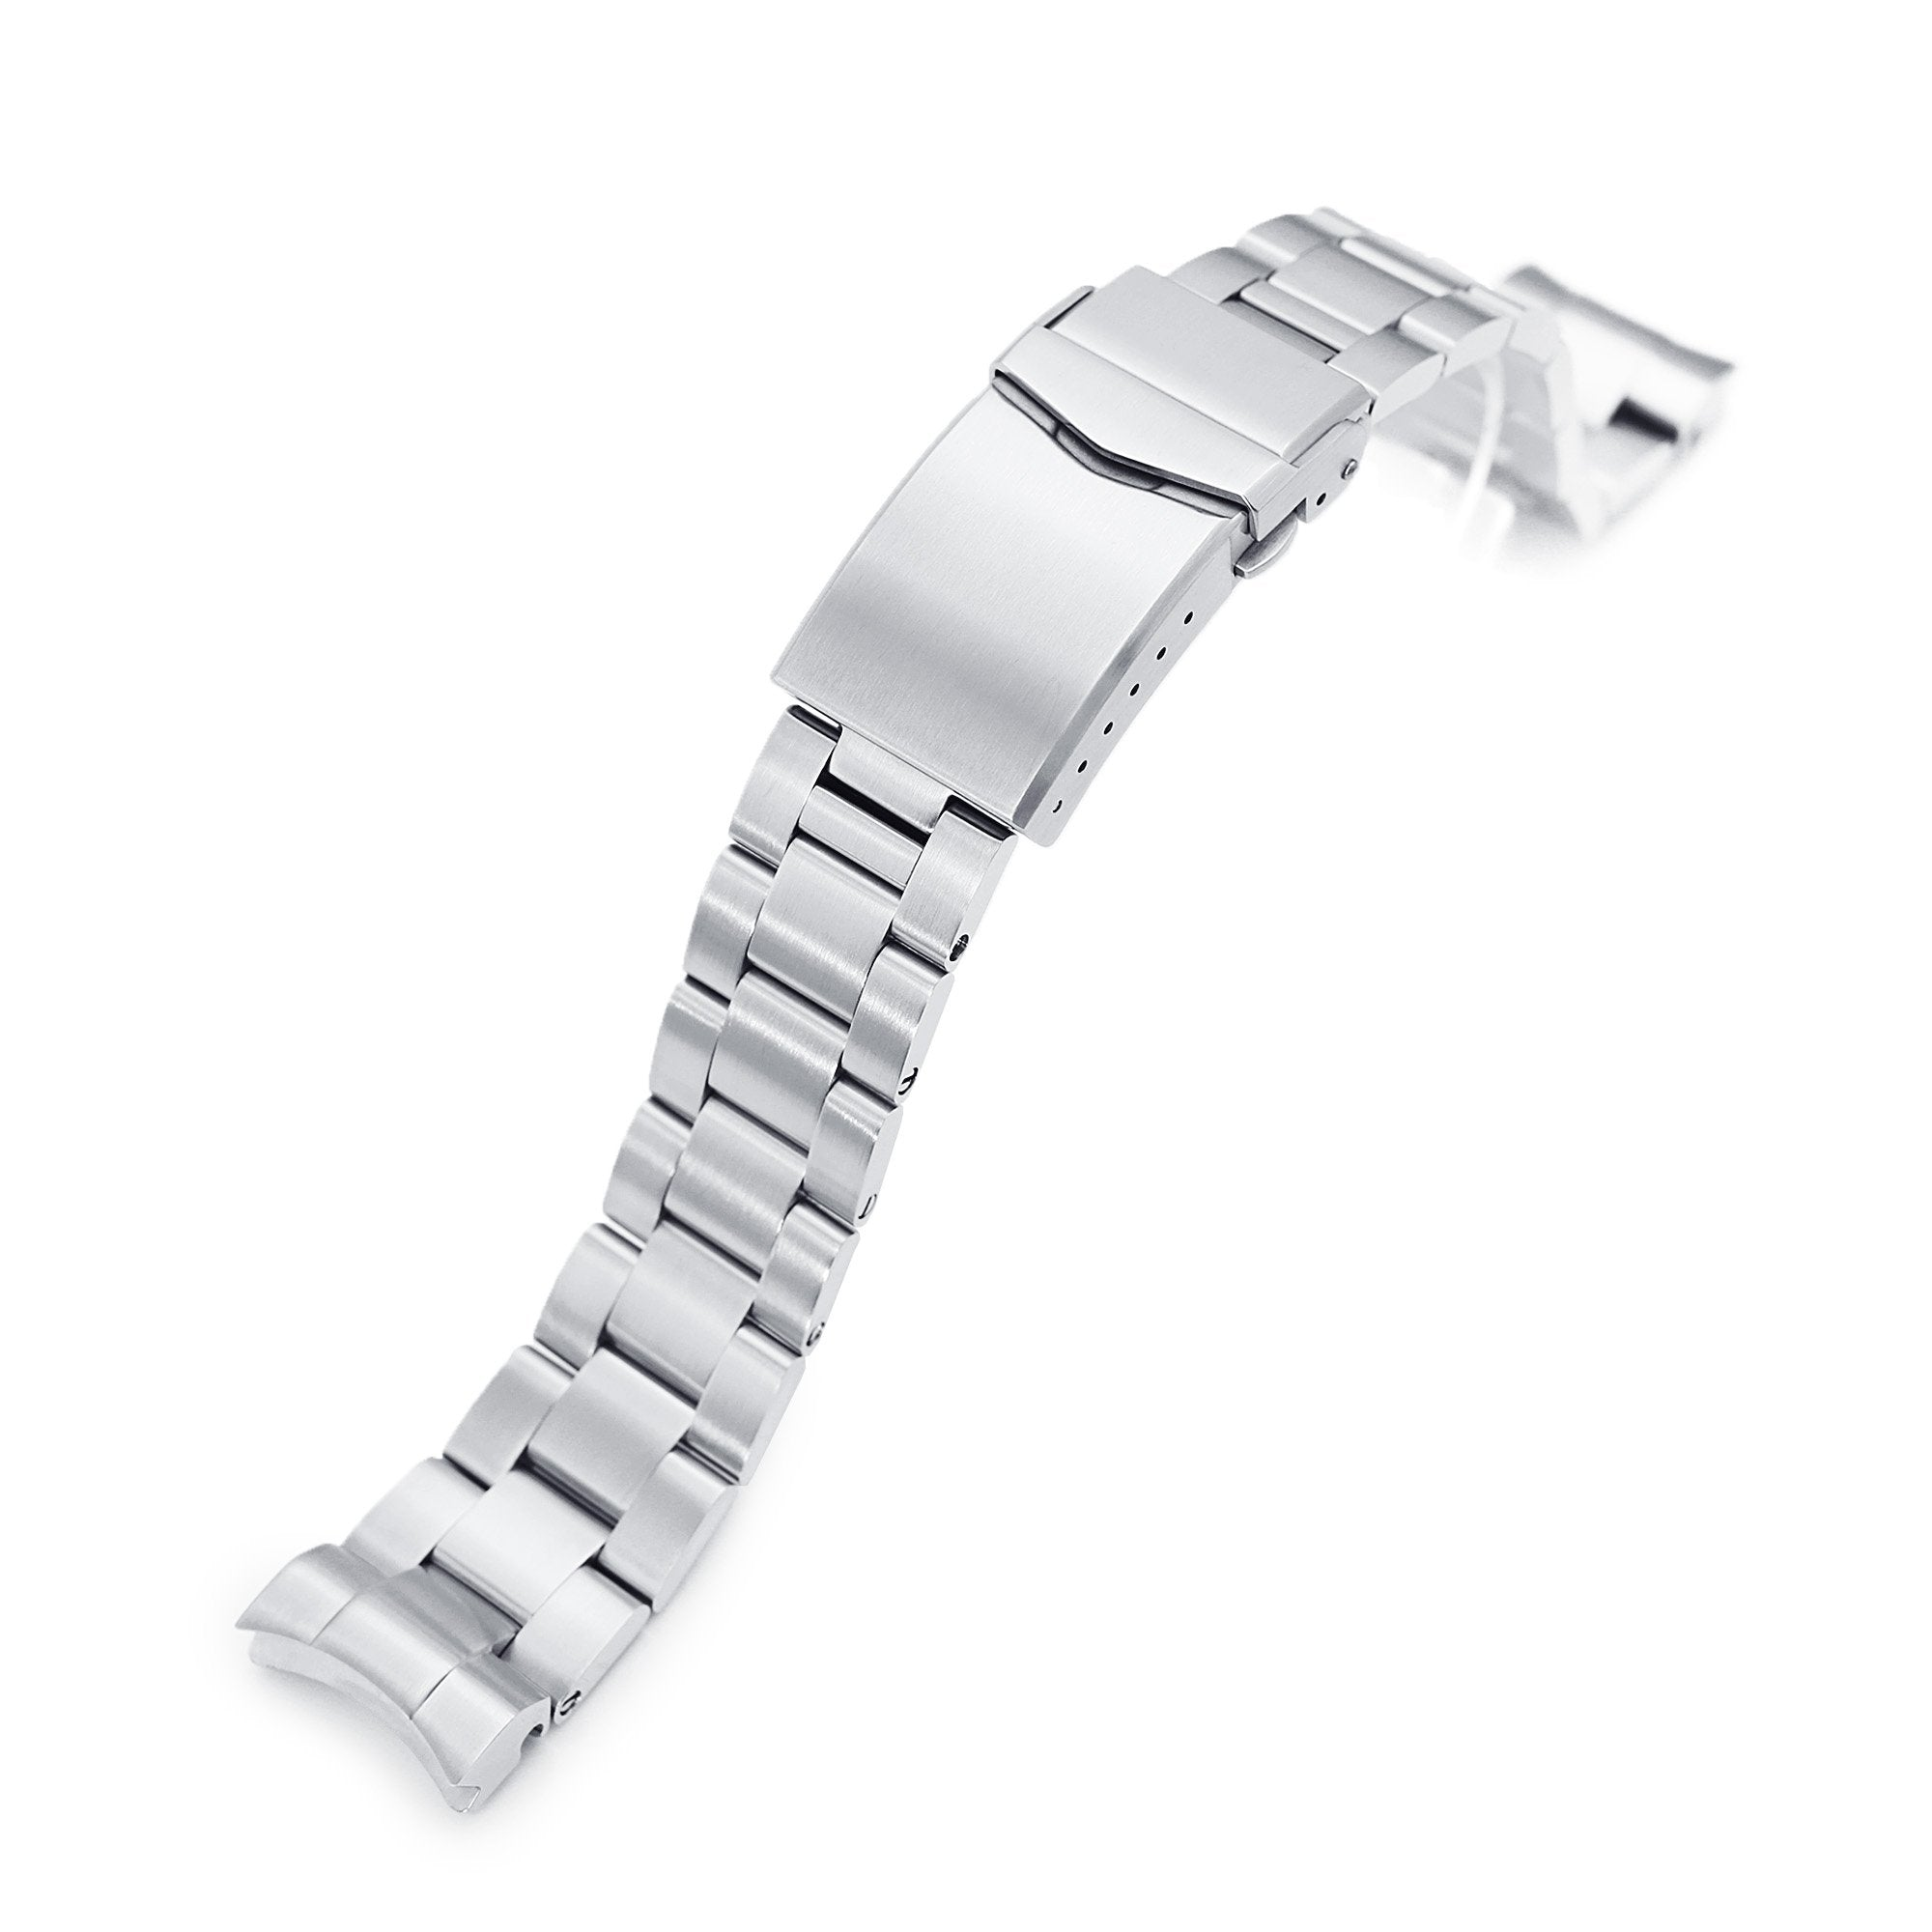 20mm Super-O Boyer 316L Stainless Steel Watch Bracelet for Seiko Baby MM 200 Brushed V-Clasp Strapcode Watch Bands